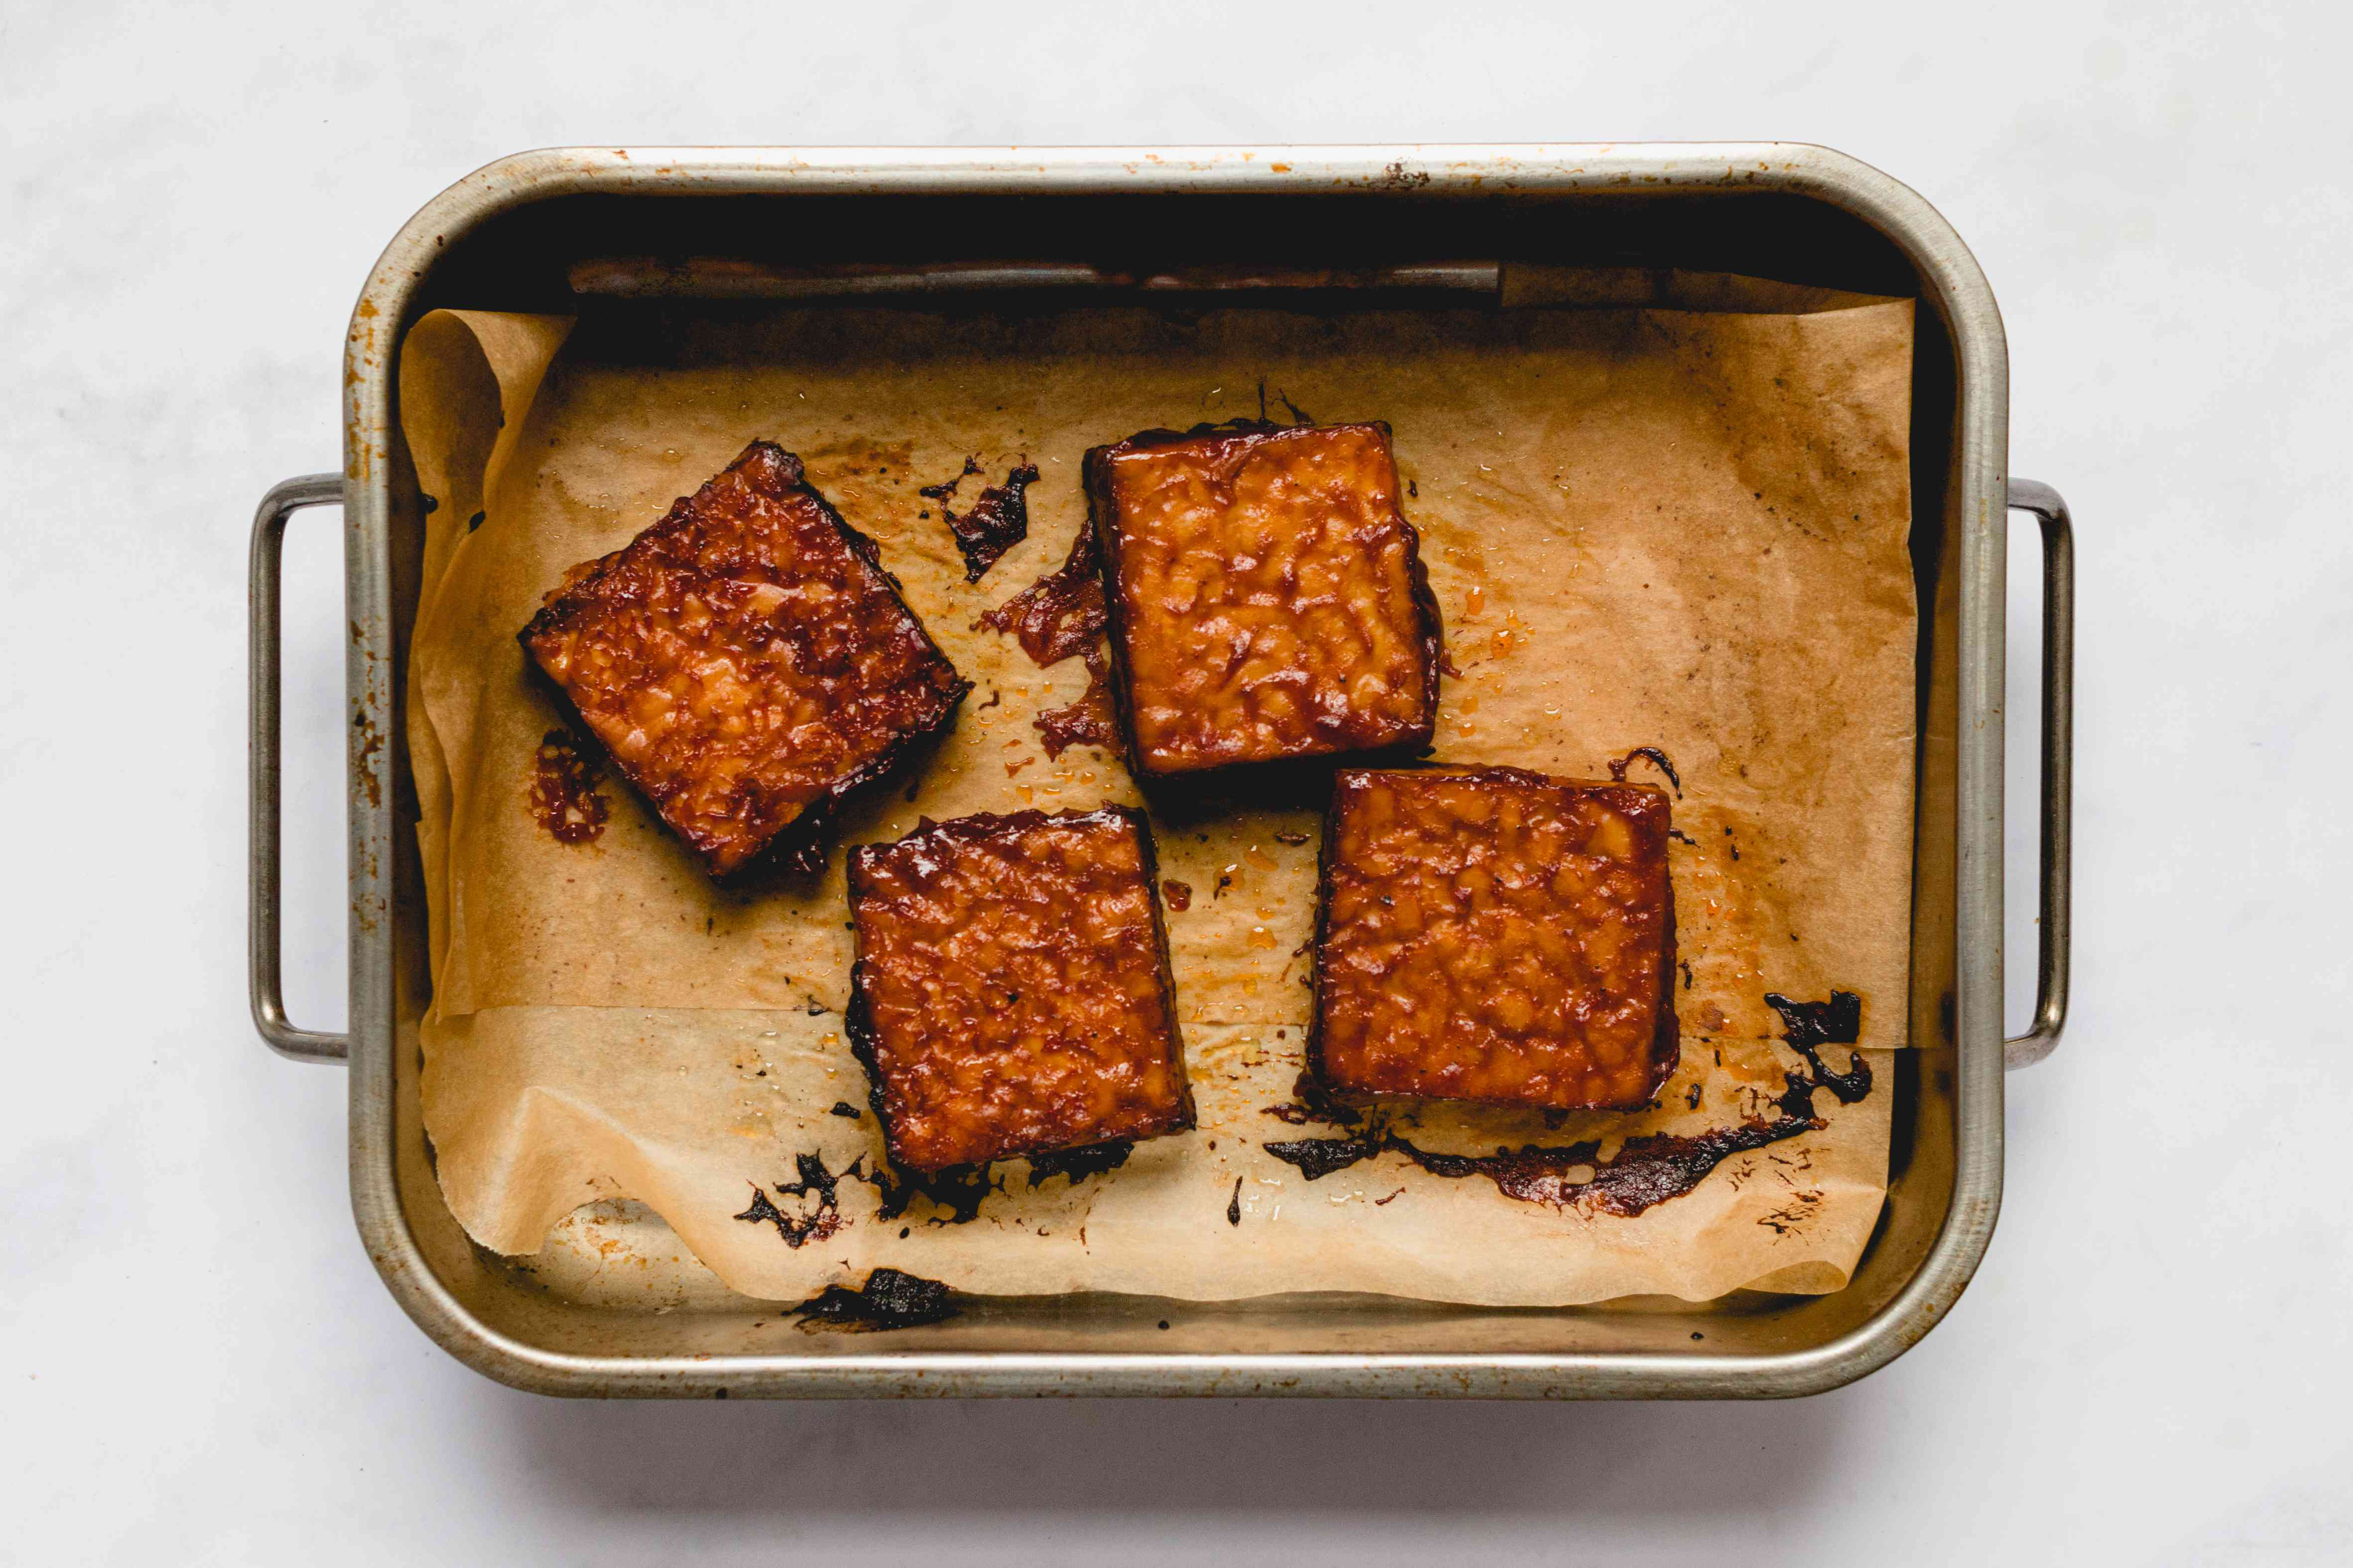 Vegan Barbecue Baked Tempeh in a baking dish